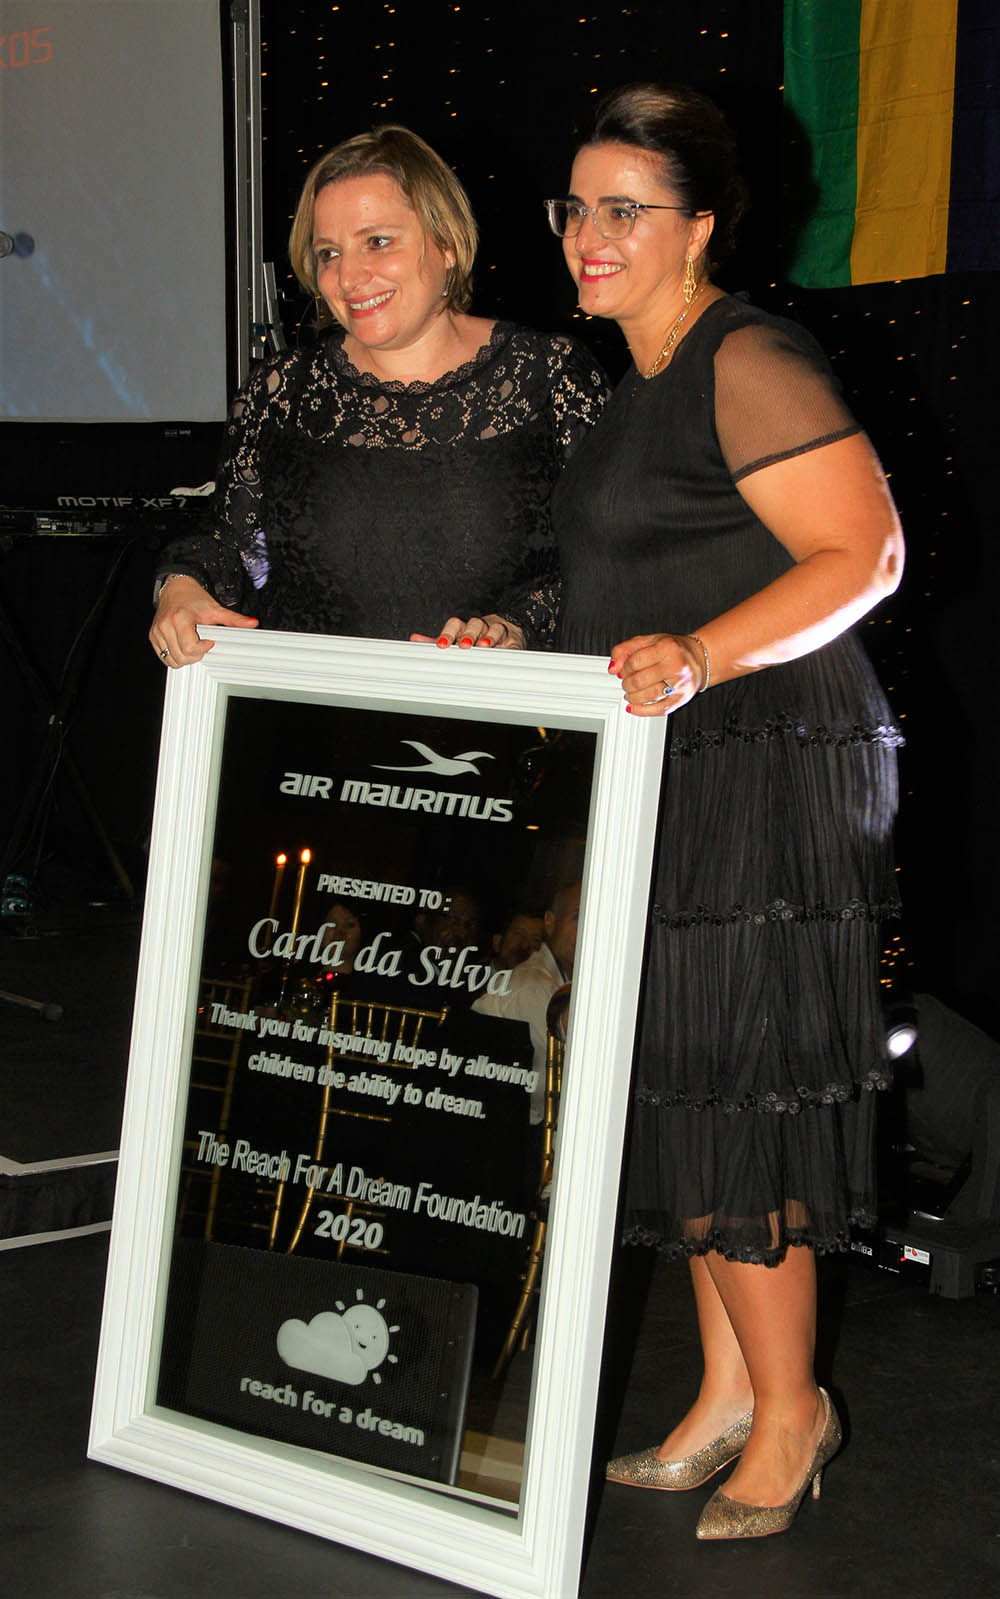 Award to Carla da Silva Reach for a Dream Foundation